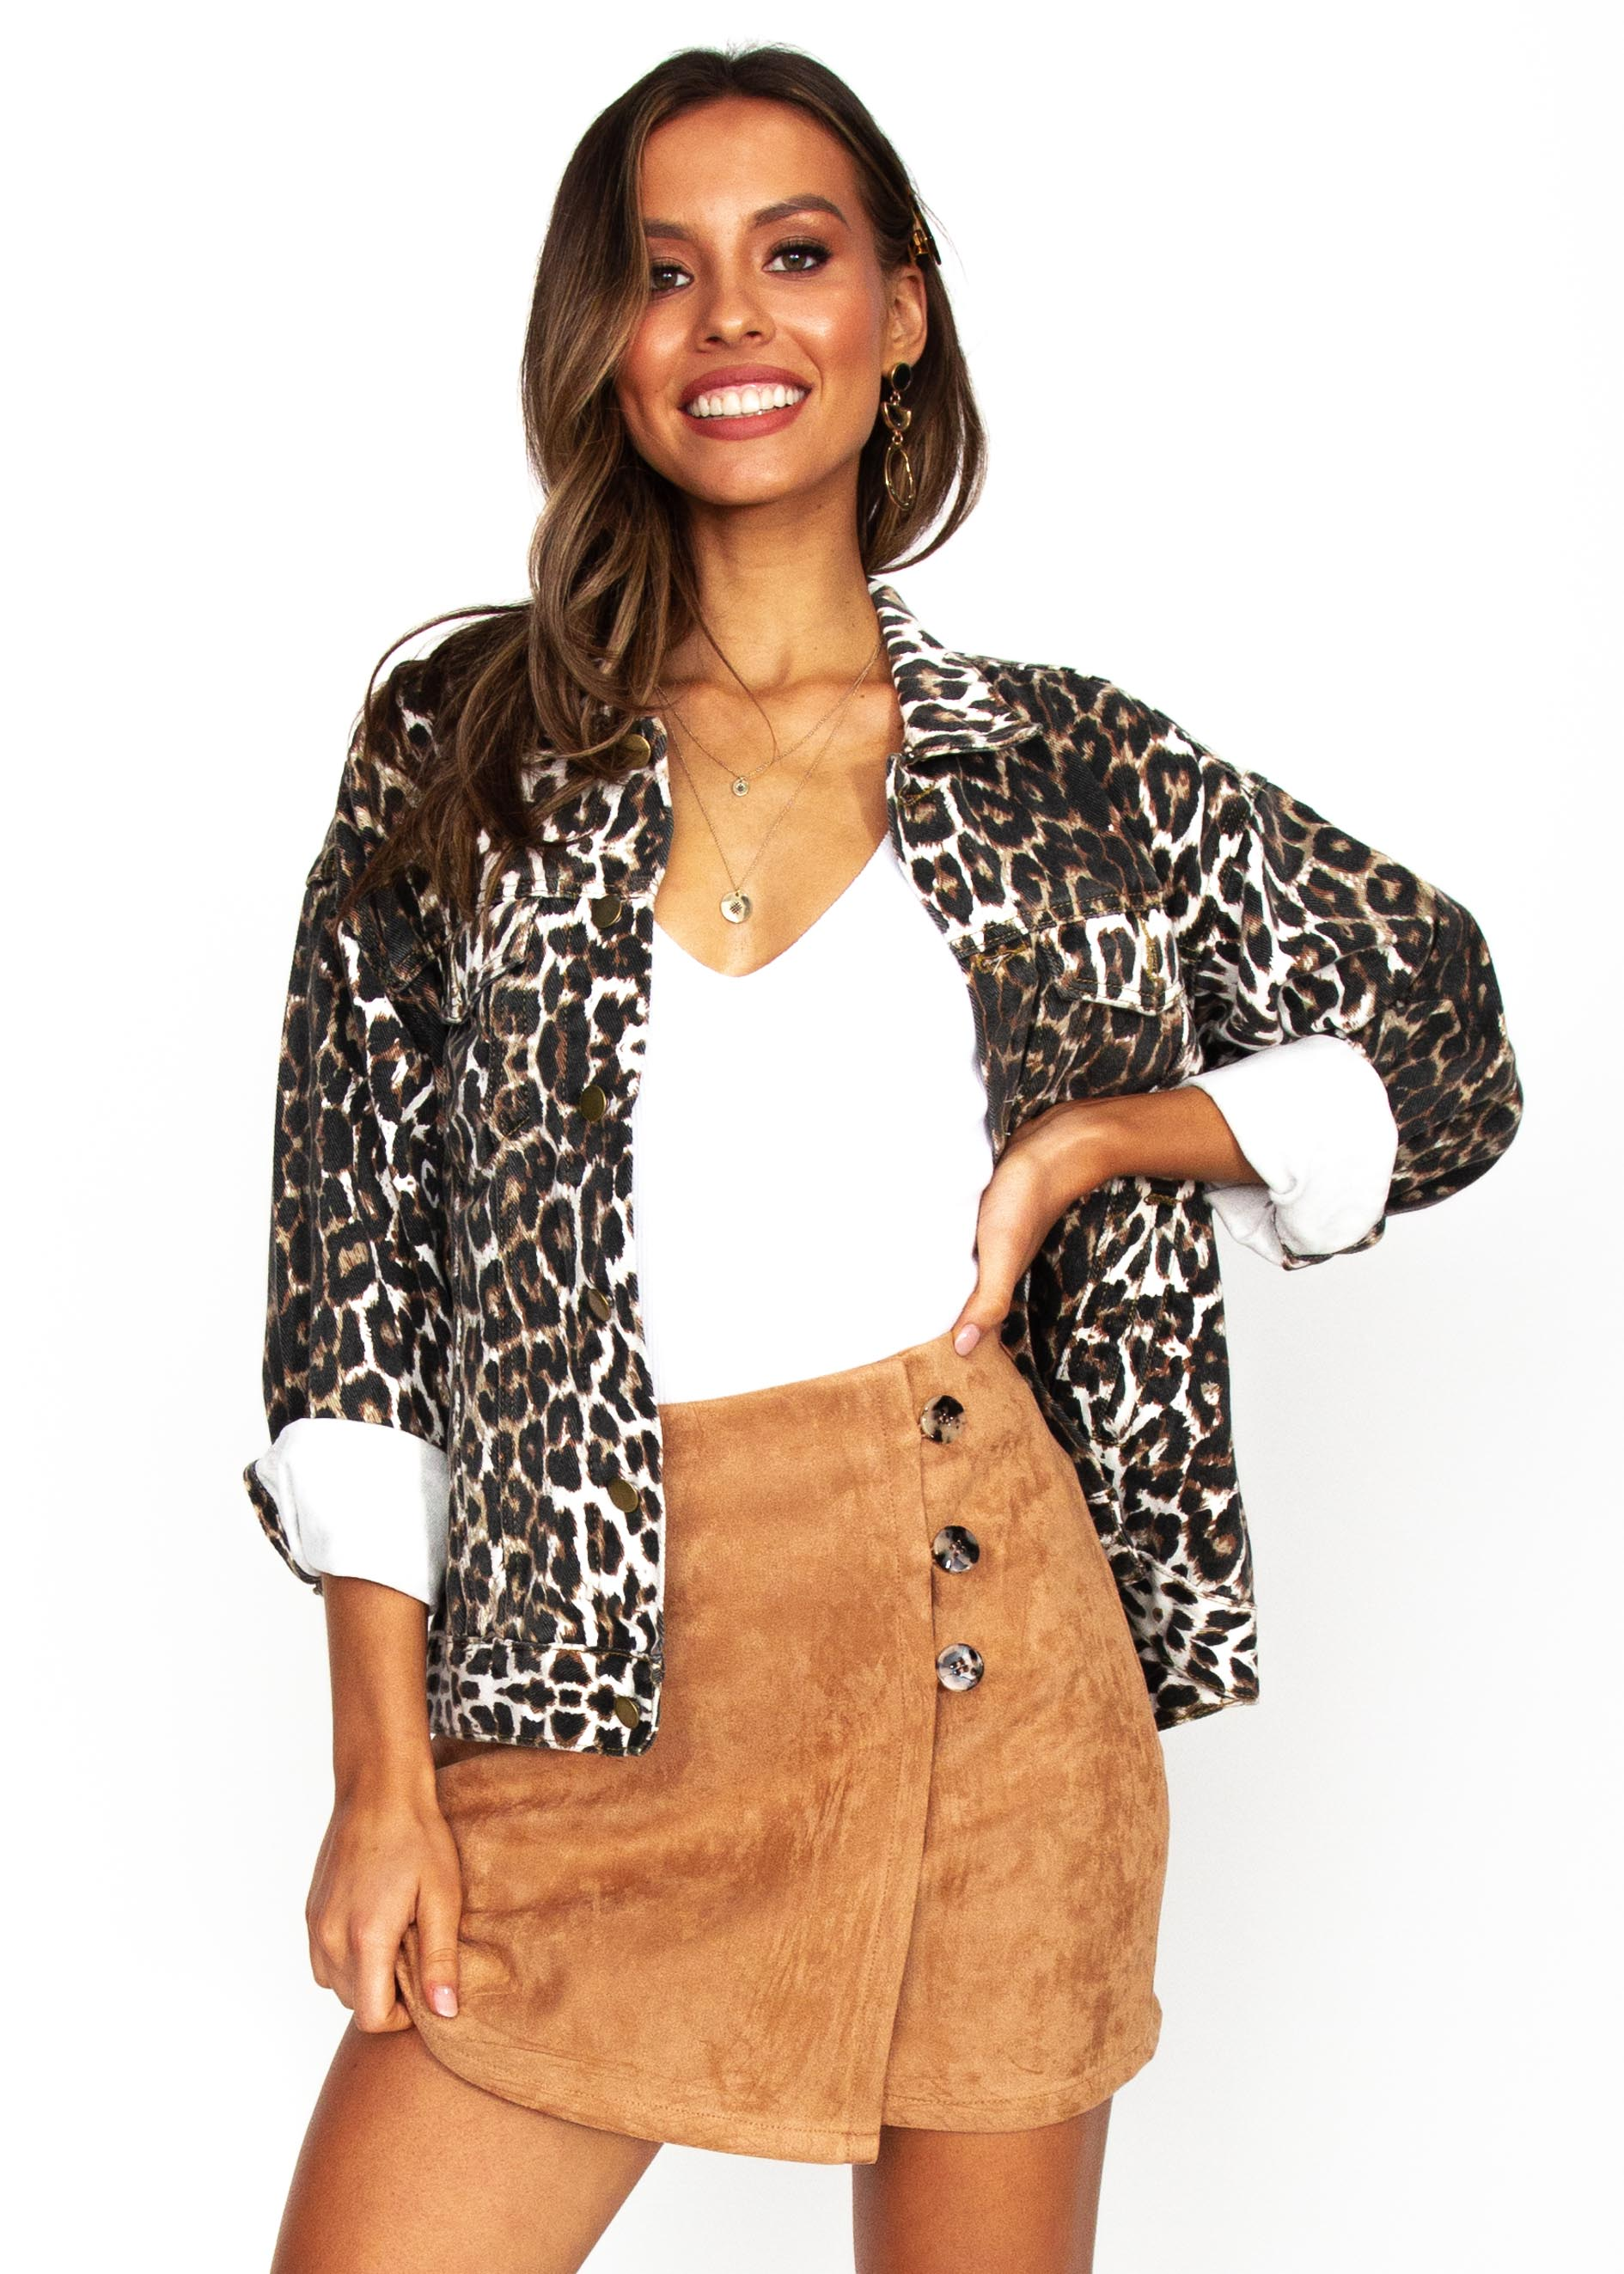 Women's Young & Reckless Jacket - Leopard